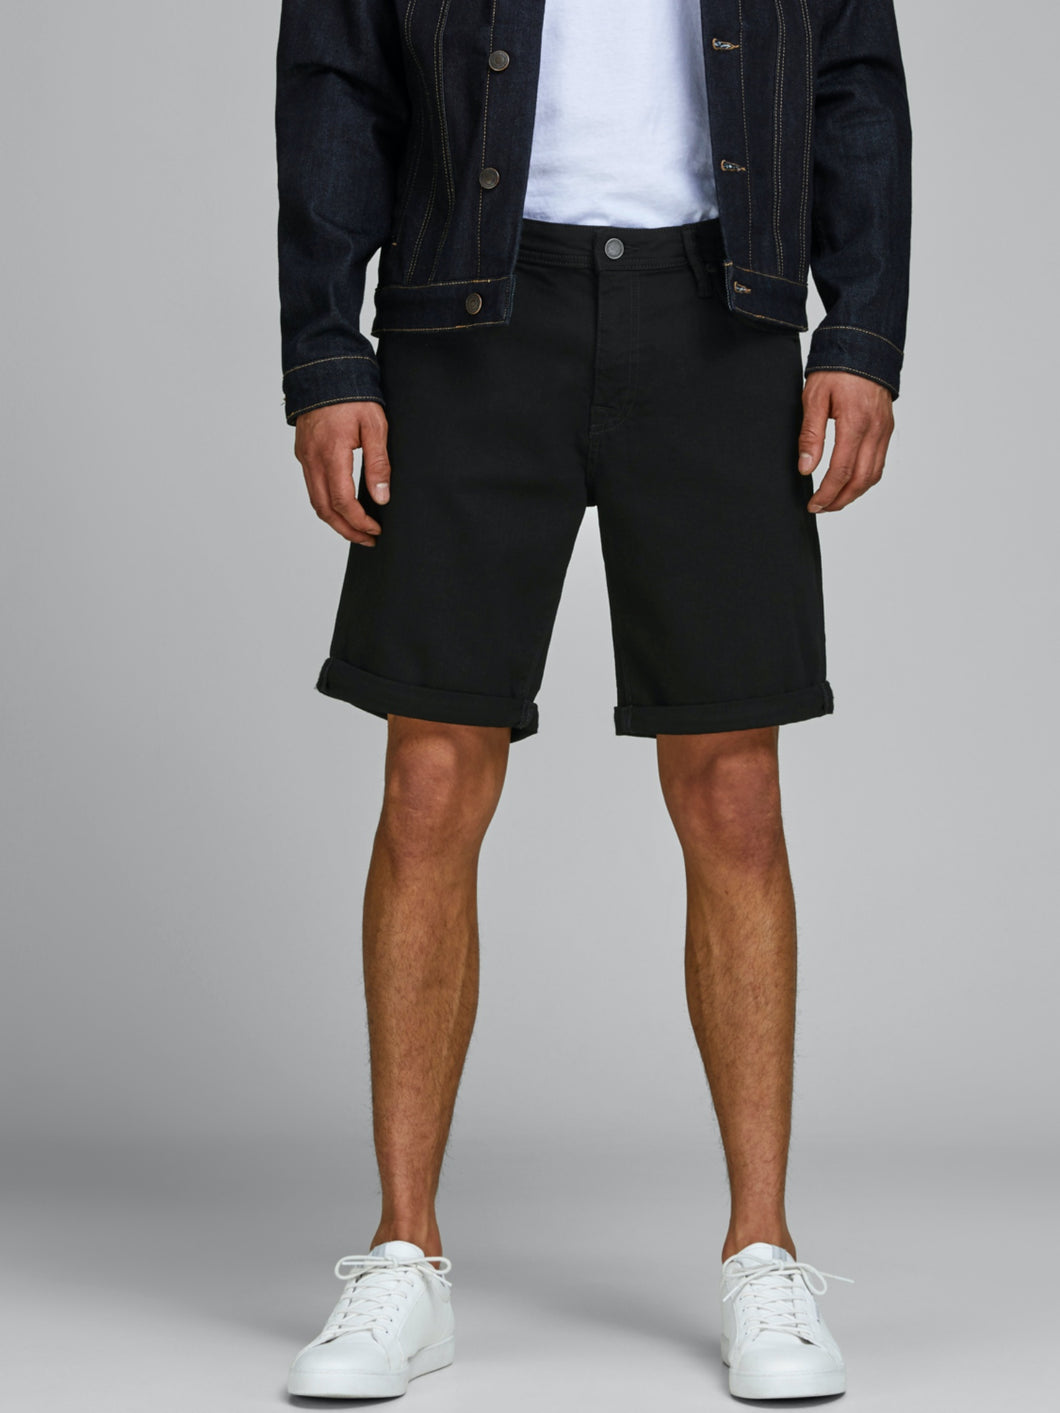 Rick Felix Shorts - Black Denim / S - SHORTS DENIM, HERR,